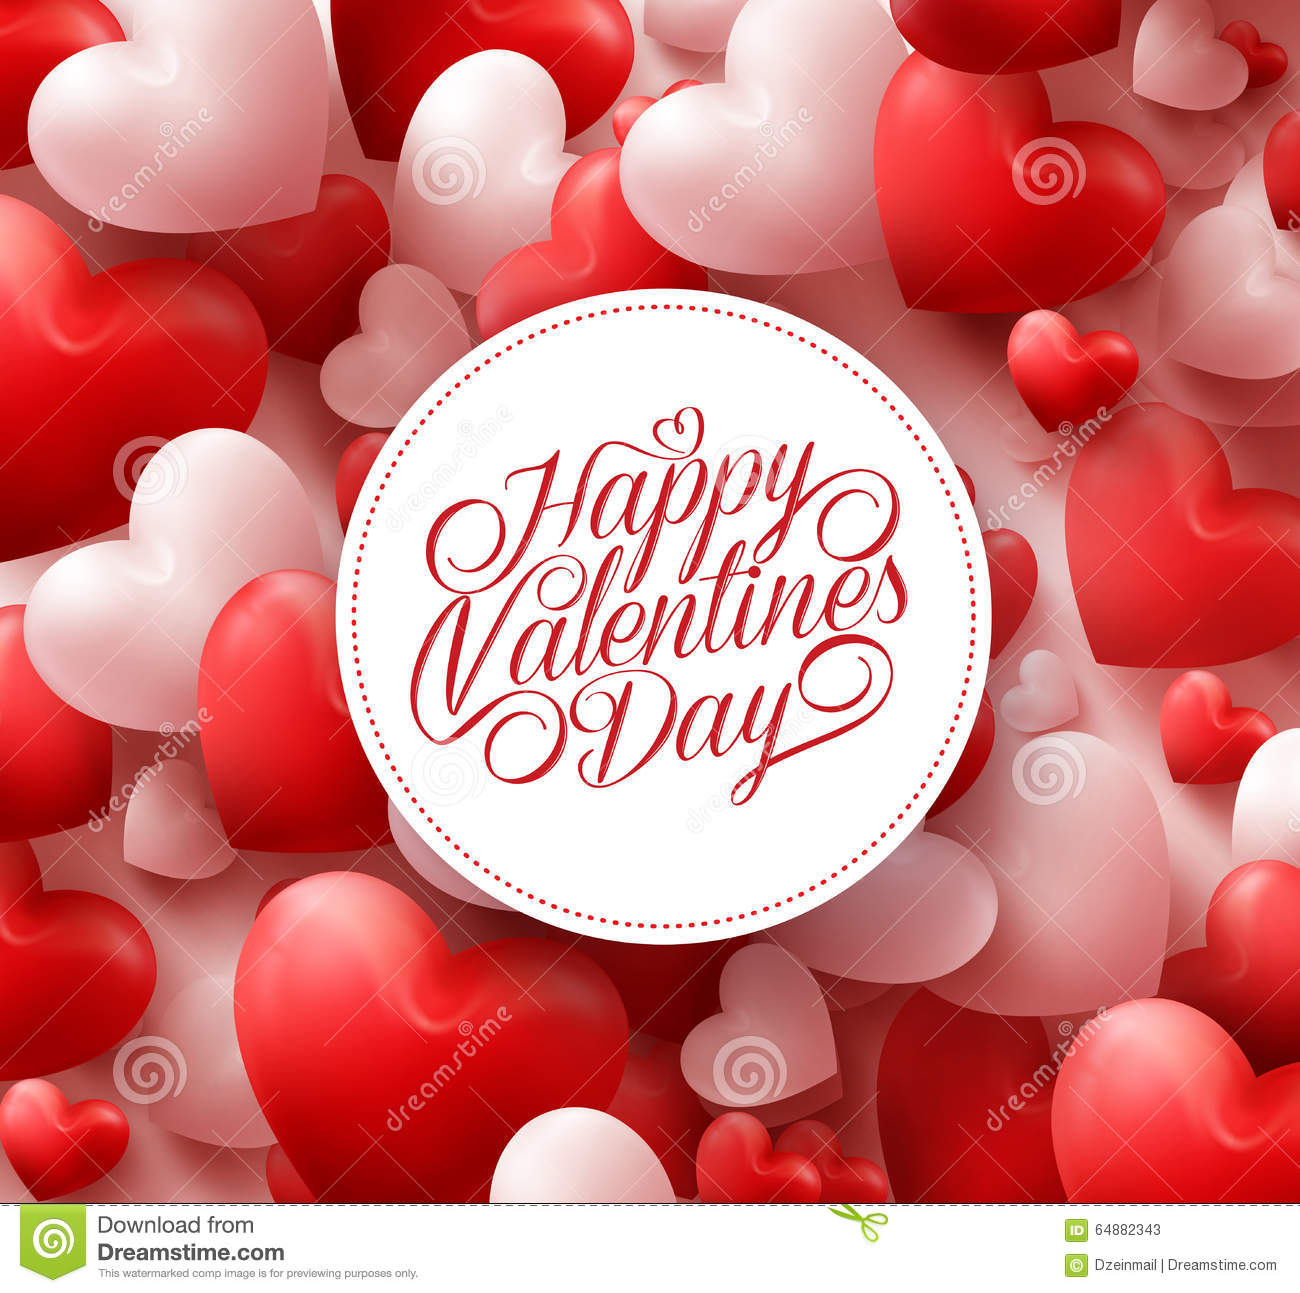 Red hearts background with happy valentines day greetings stock red hearts background with happy valentines day greetings m4hsunfo